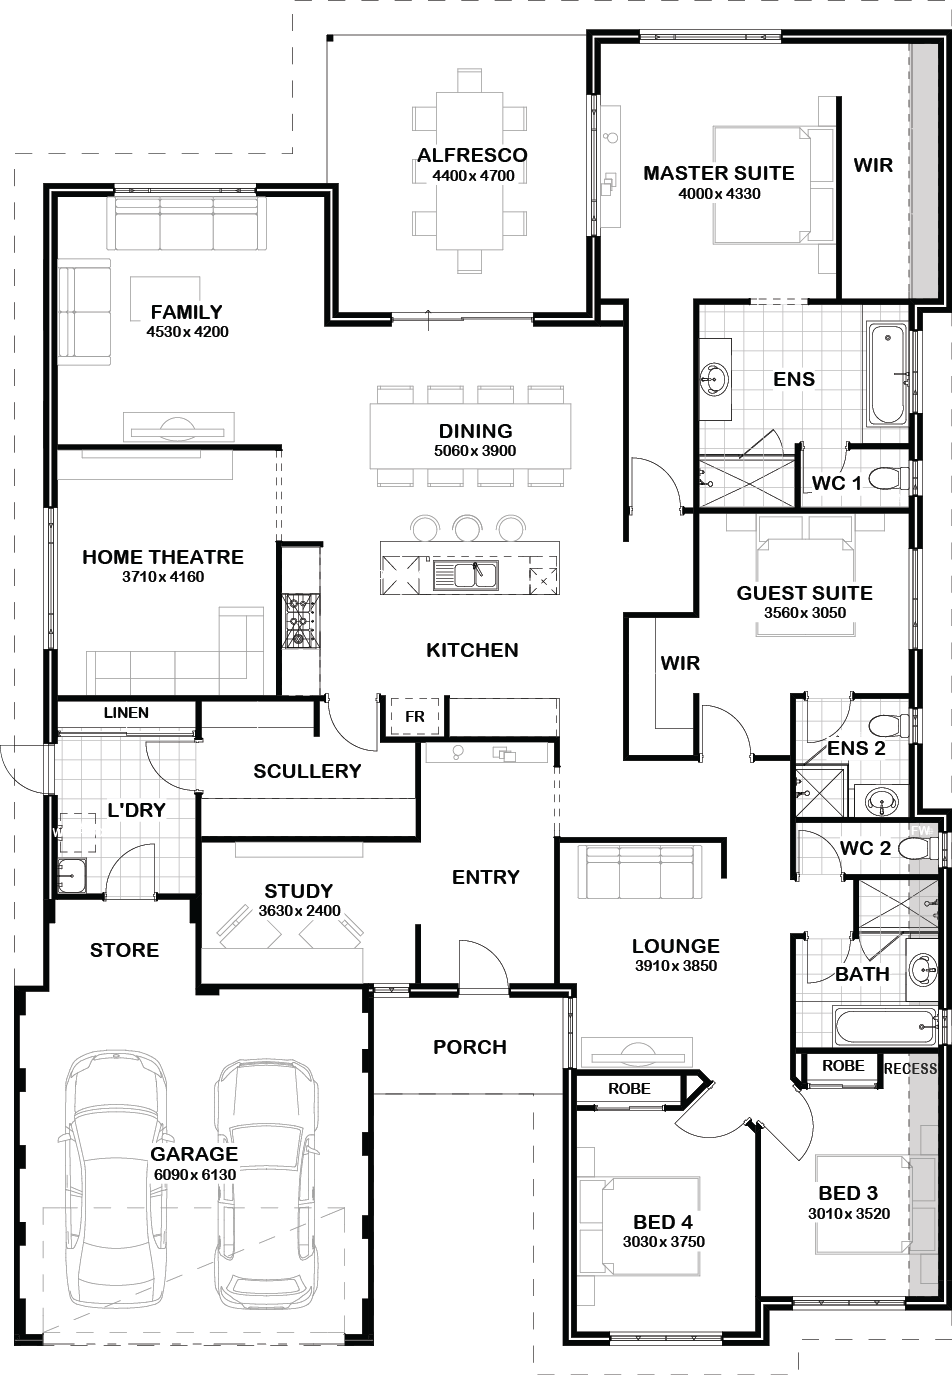 Nice Idea For The Master Closet Behind The Bed Nice Idea For The Master Closet Behind The Bed Nice Idea Home Design Floor Plans New House Plans Floor Plans